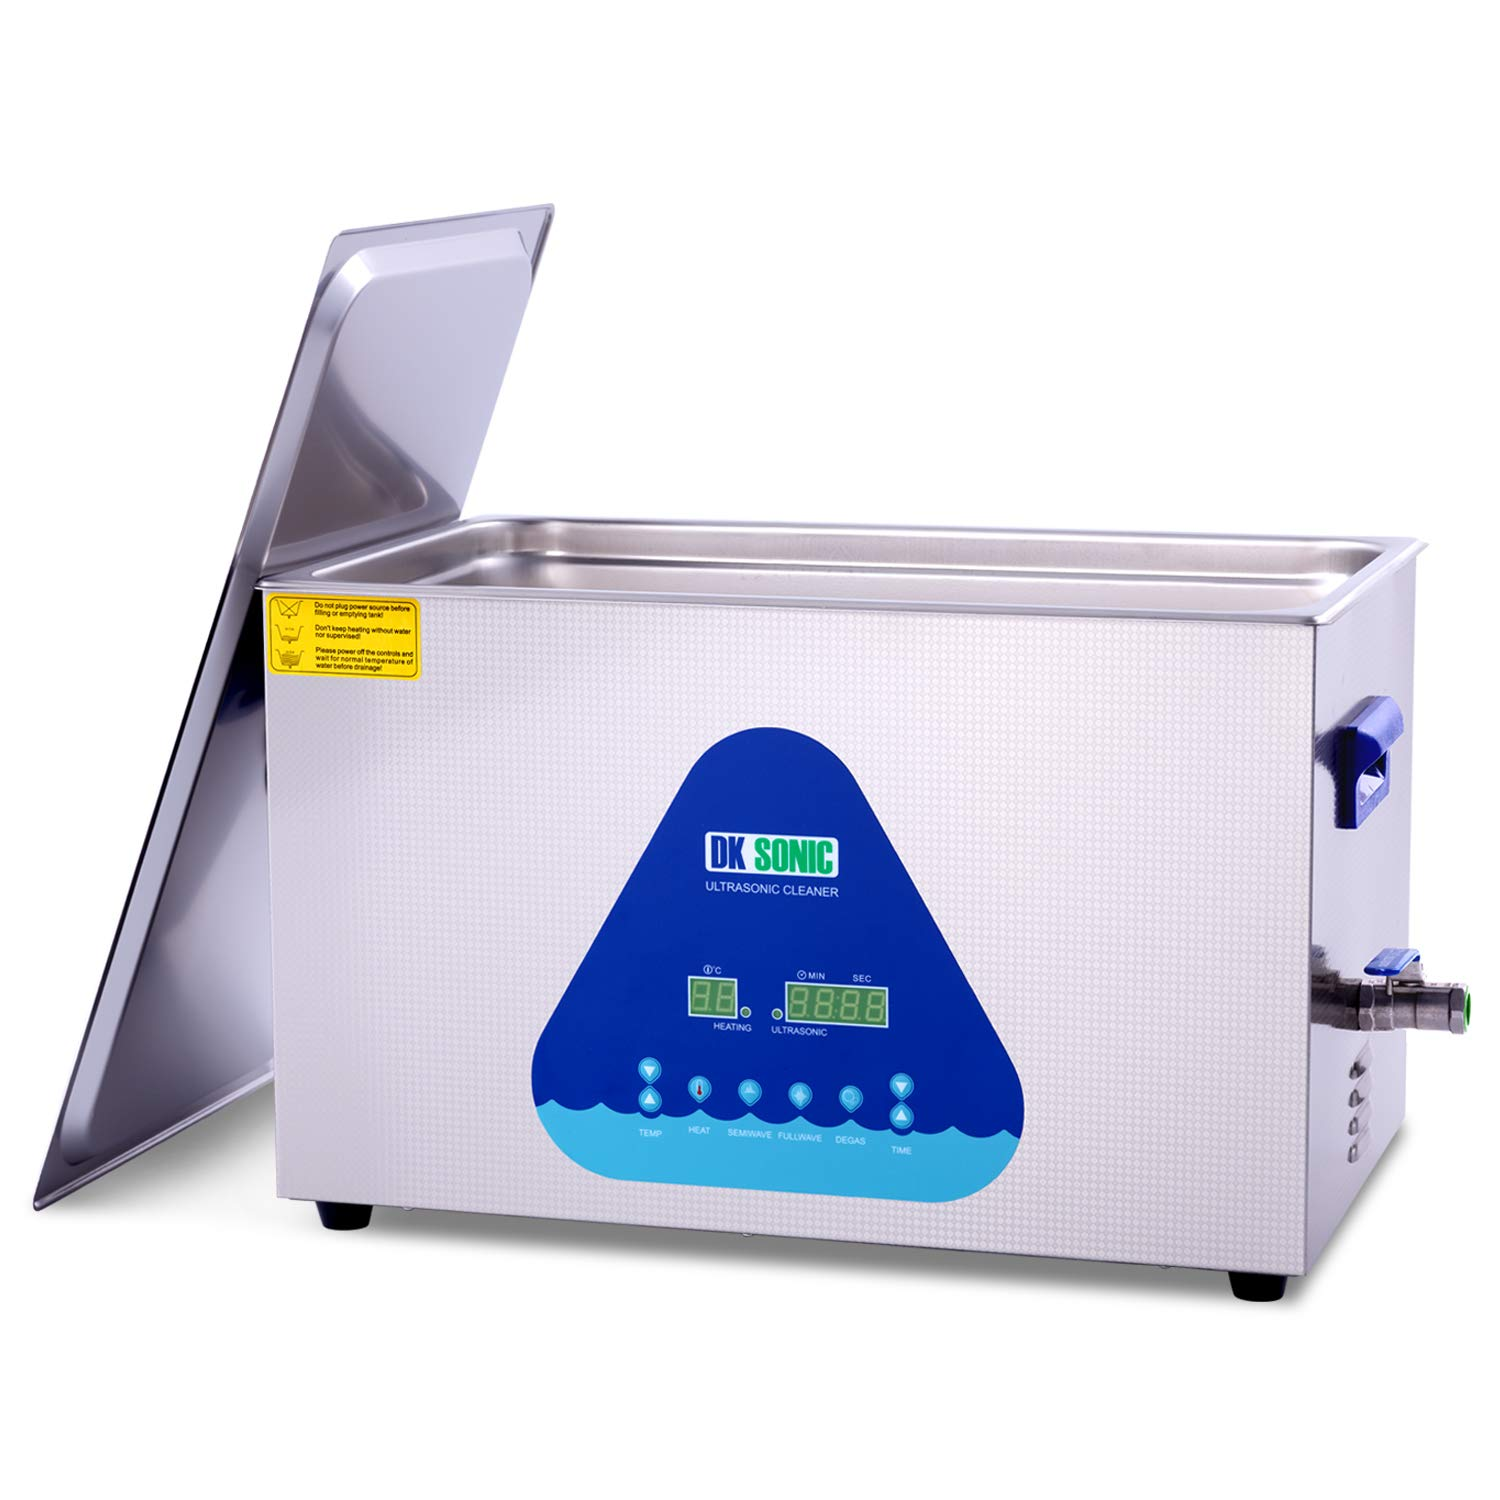 Large Professional Ultrasonic Cleaner-DK SONIC 22L 480W Sonic Cleaner with Heater and Basket for Metal Parts,Carburetor,Fuel Injector,Brass,Auto Parts,Engine Parts,Motor Repair Tools,etc by DK SONIC